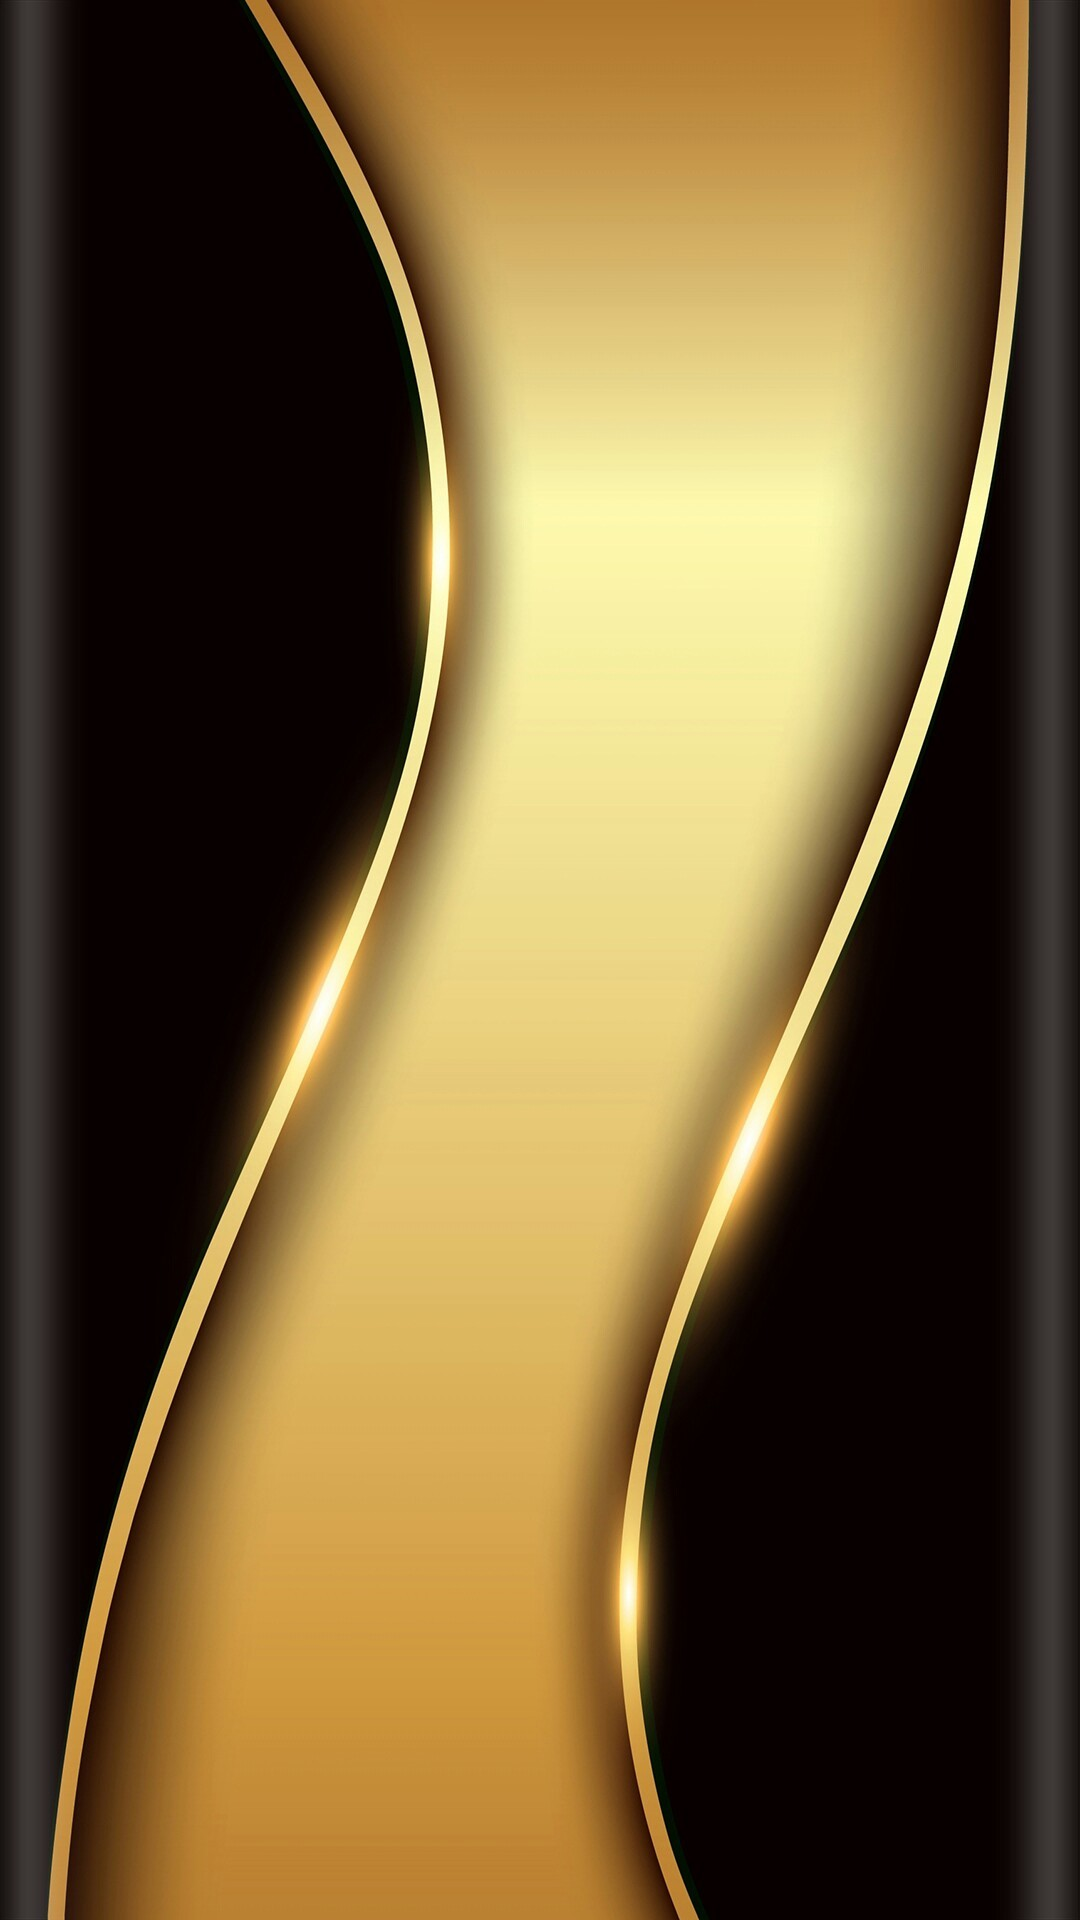 Apple Ios Wallpaper Hd Gold Wallpaper Images 57 Images